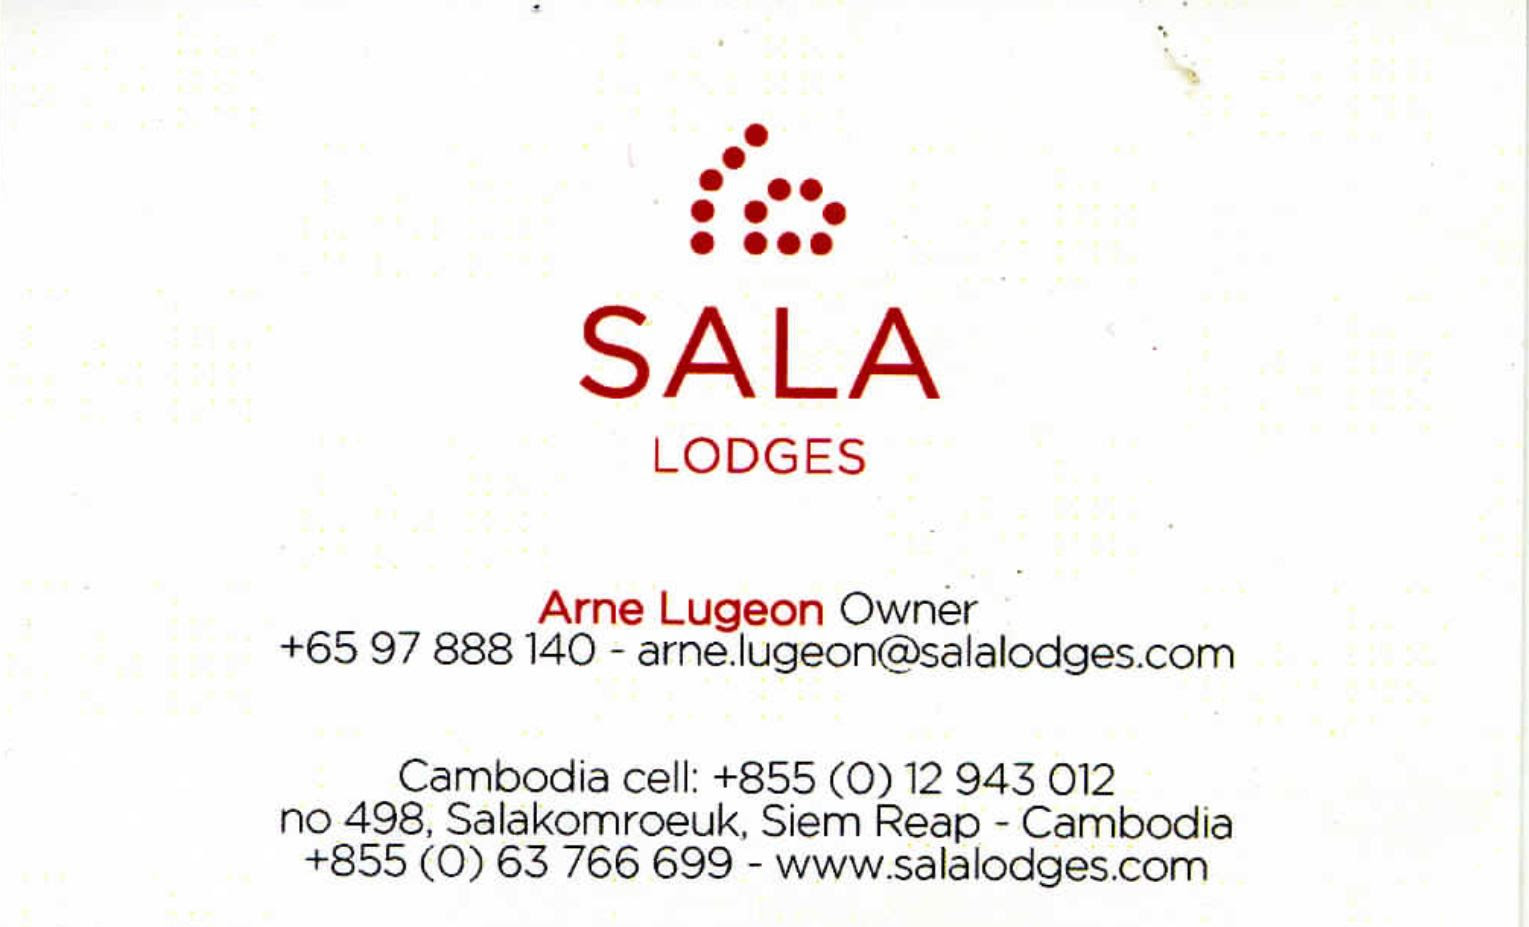 Sala Lodges, Arne Lugeon, Owner